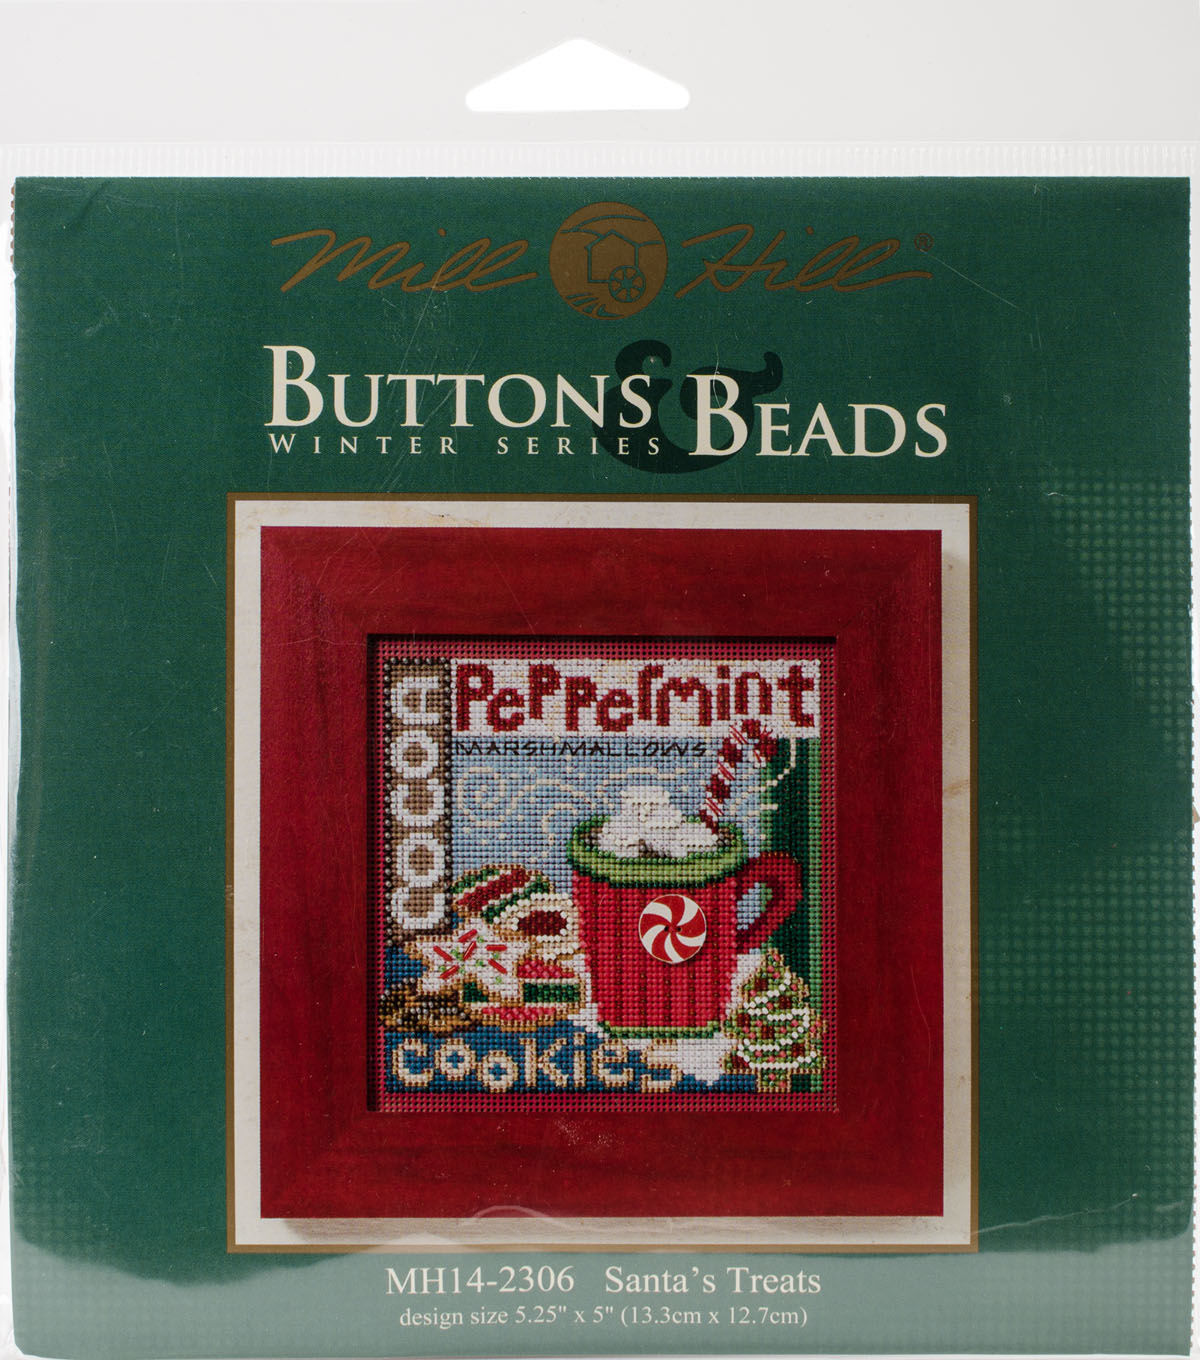 MILL HILL Buttons Beads Kit Counted Cross Stitch SANTA/'S TREATS MH14-2306